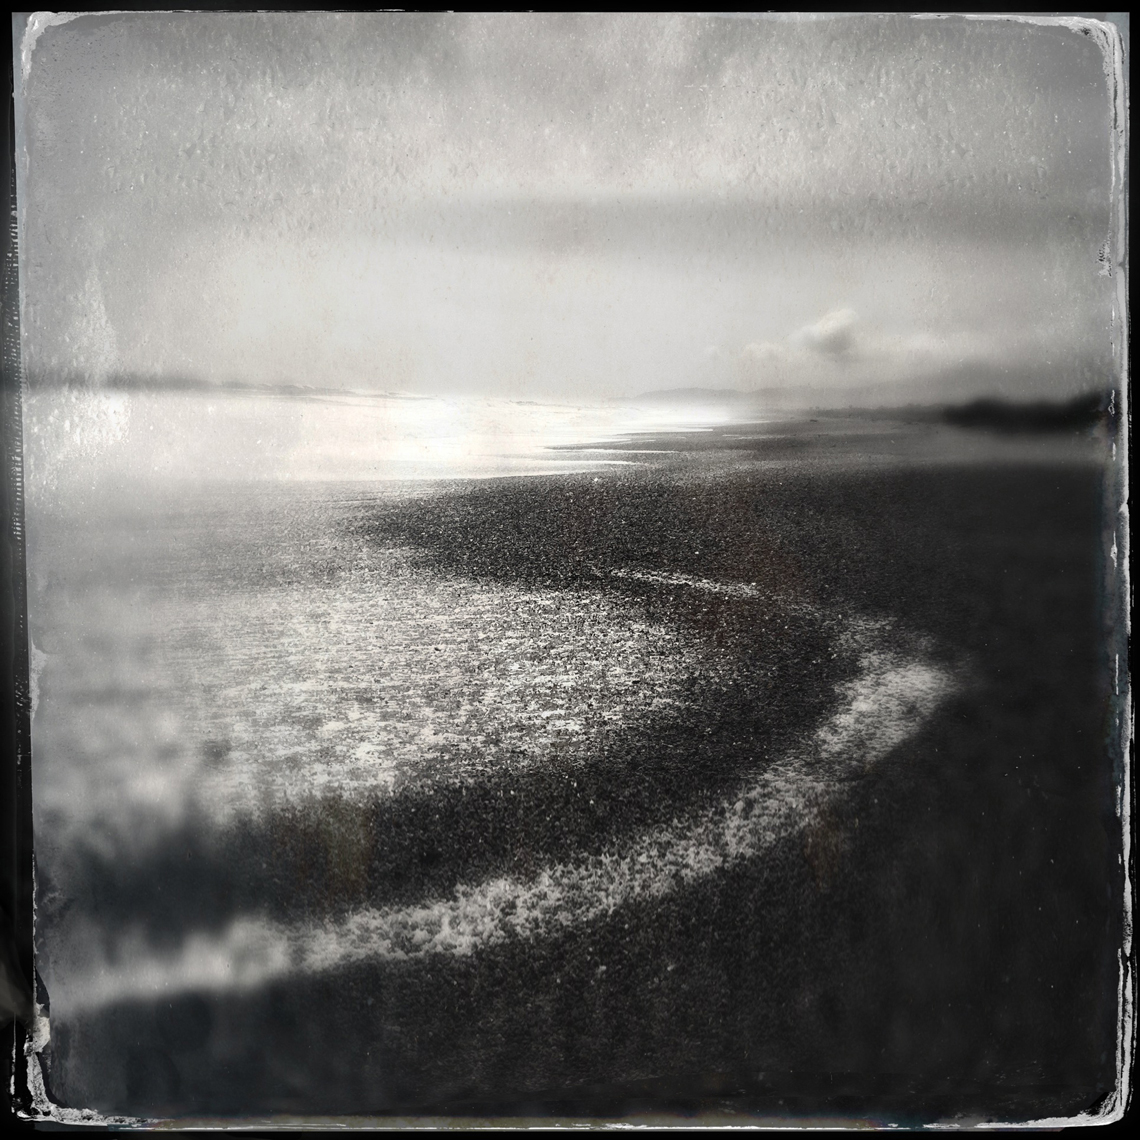 Jon Wyatt Photography - Foam and backwash, beach New Zealand. Hipstamatic